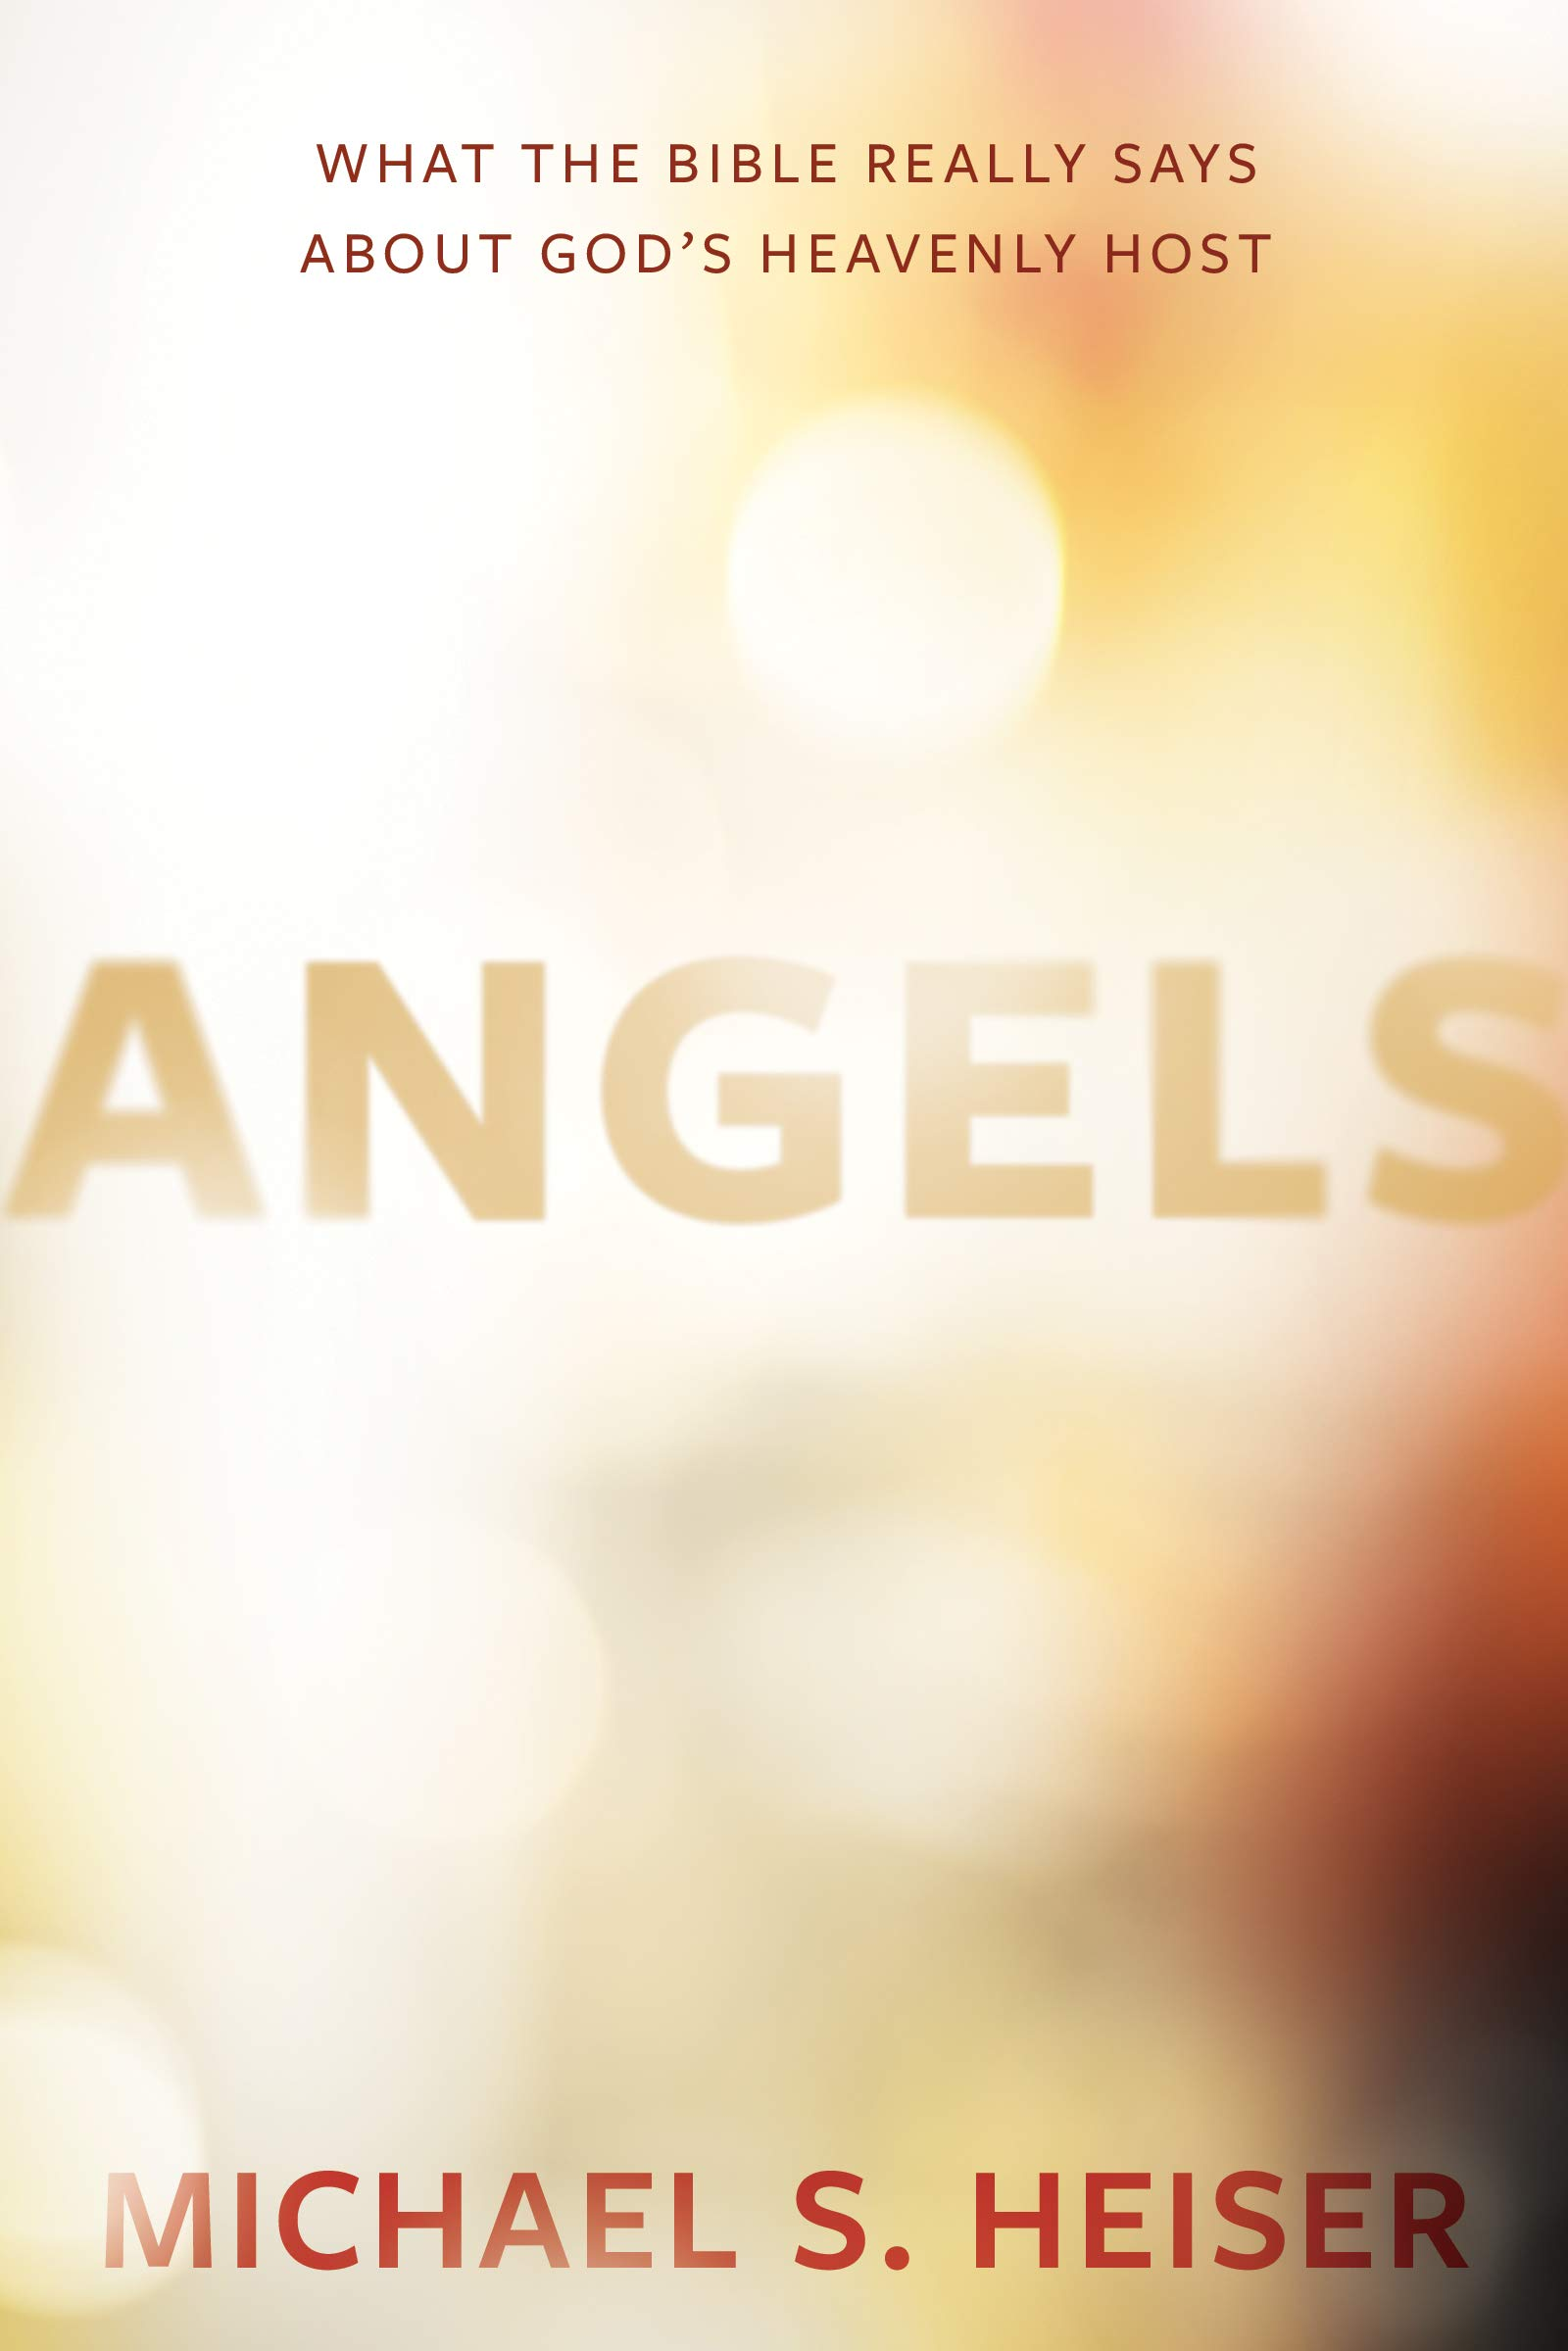 Angels: What the Bible Really Says About God's